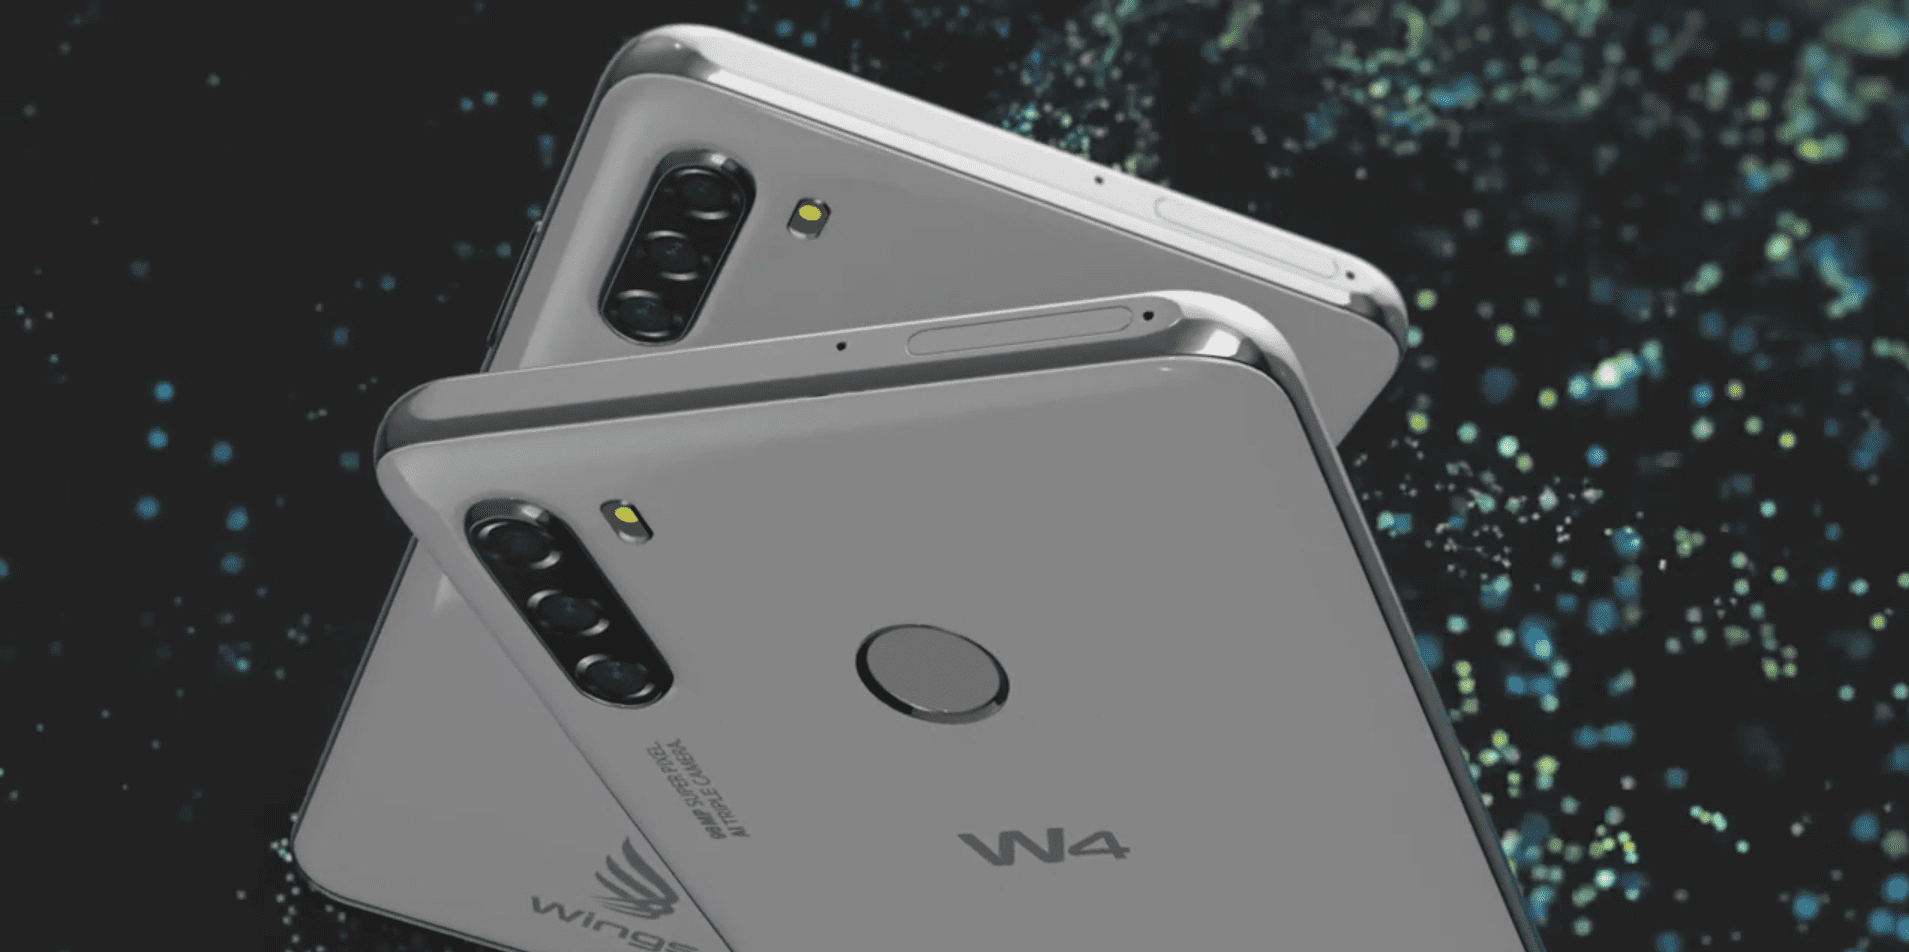 W4 video promocional smartphone